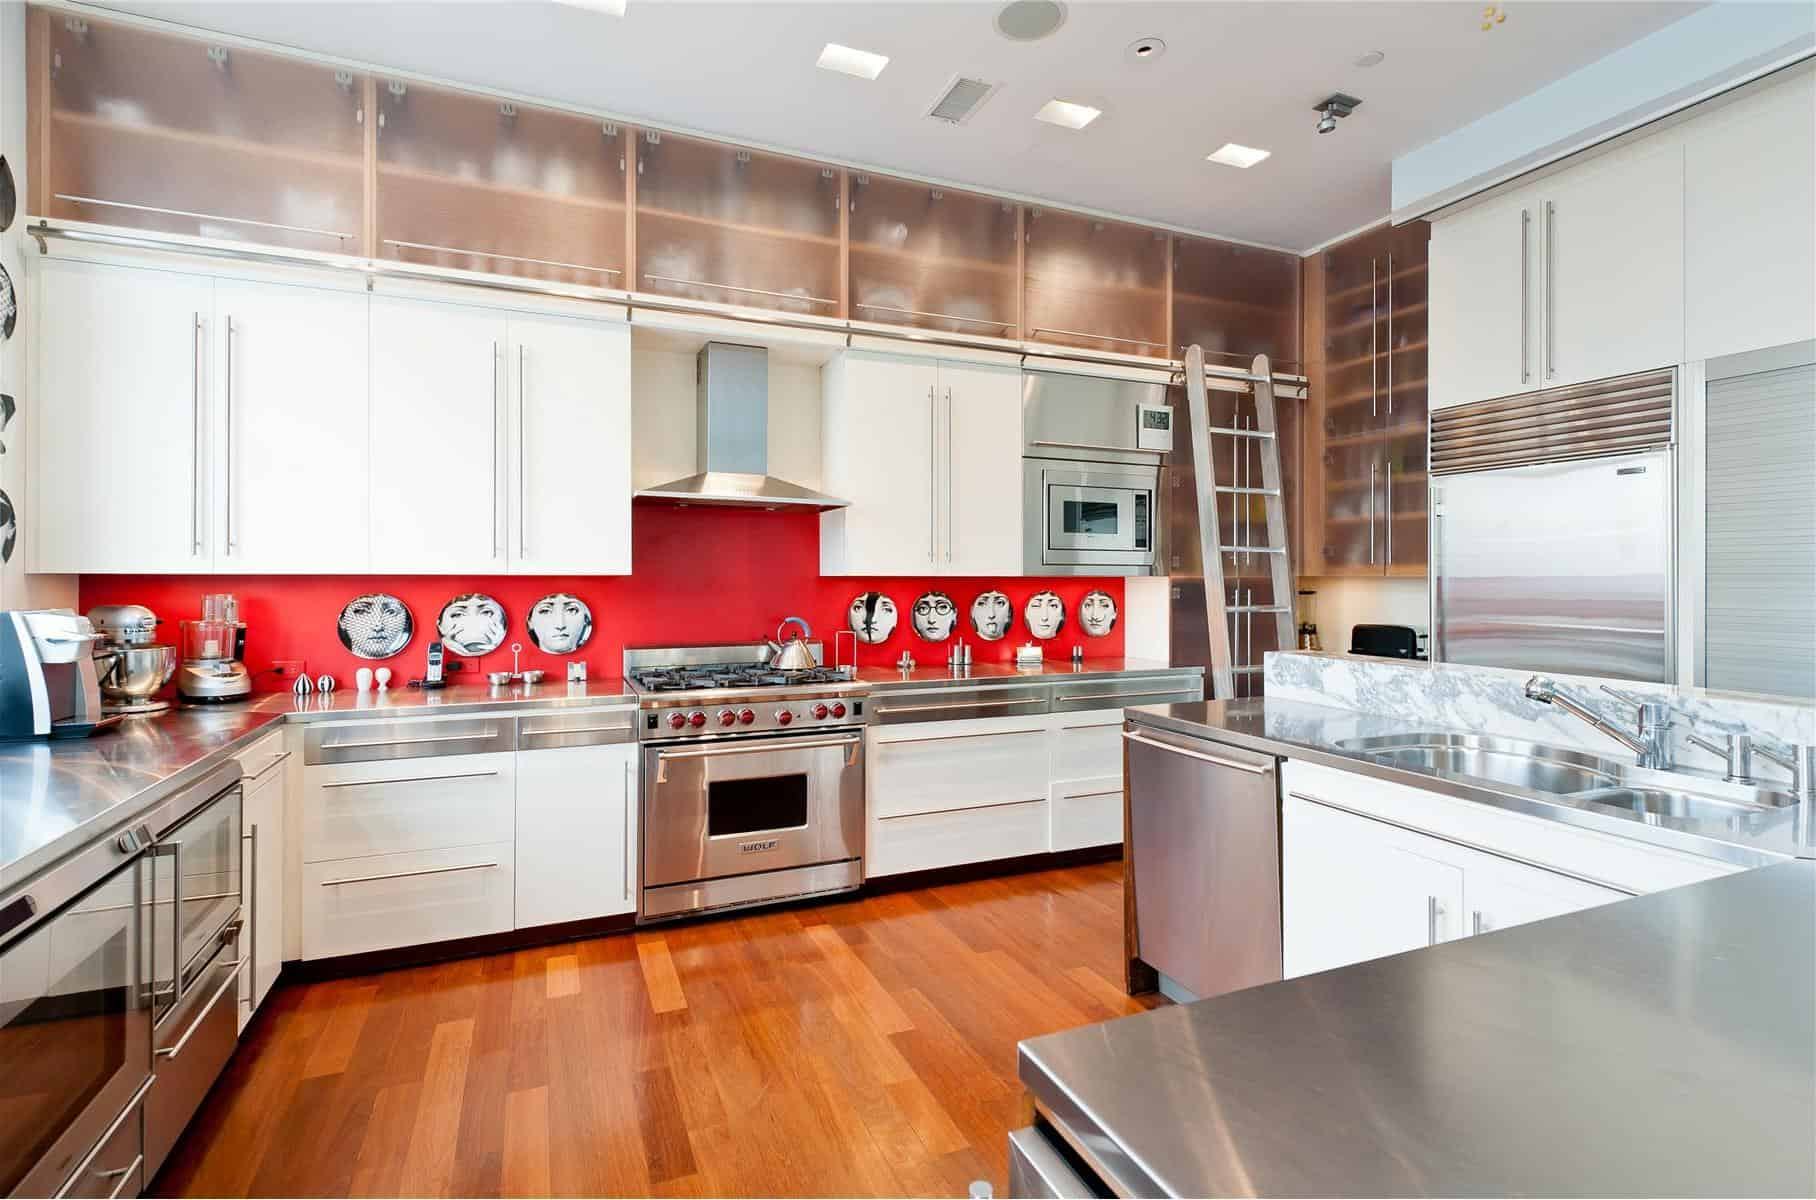 best-black-and-white-people-face-red-kitchen-wall-among-decosee-kitchen-1816×1200-245kb